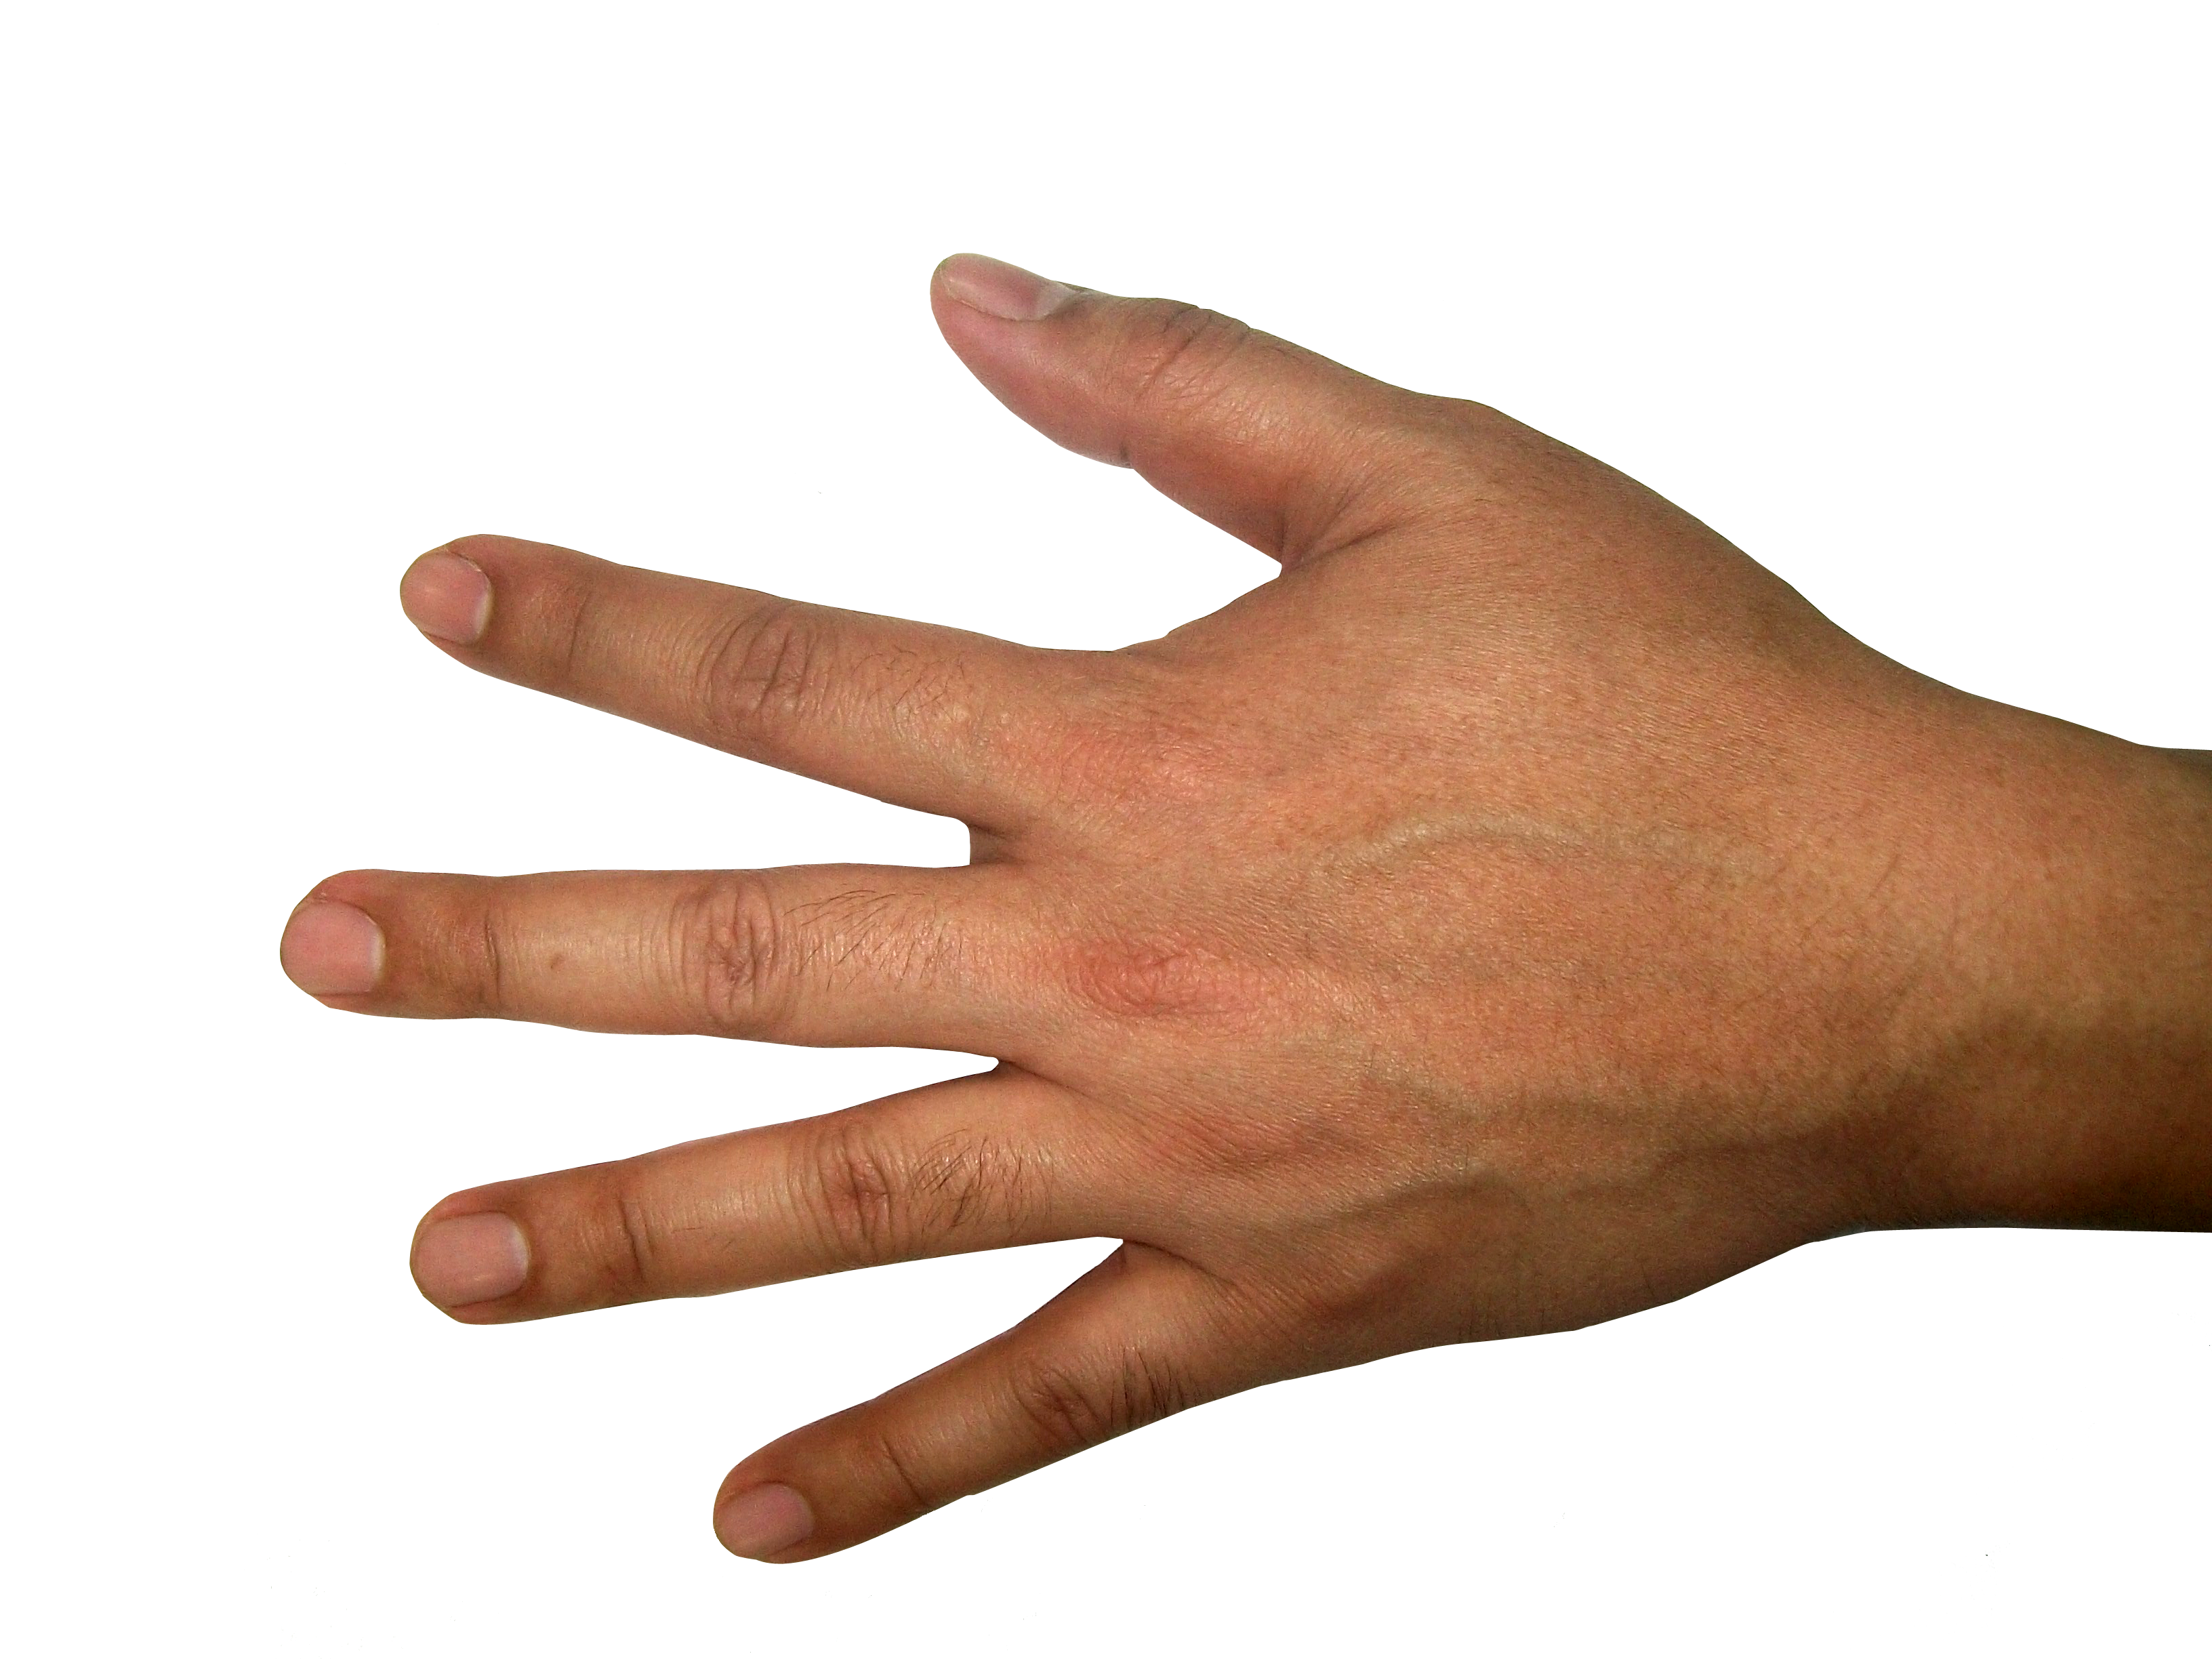 Hands png free images. Fingers clipart open hand